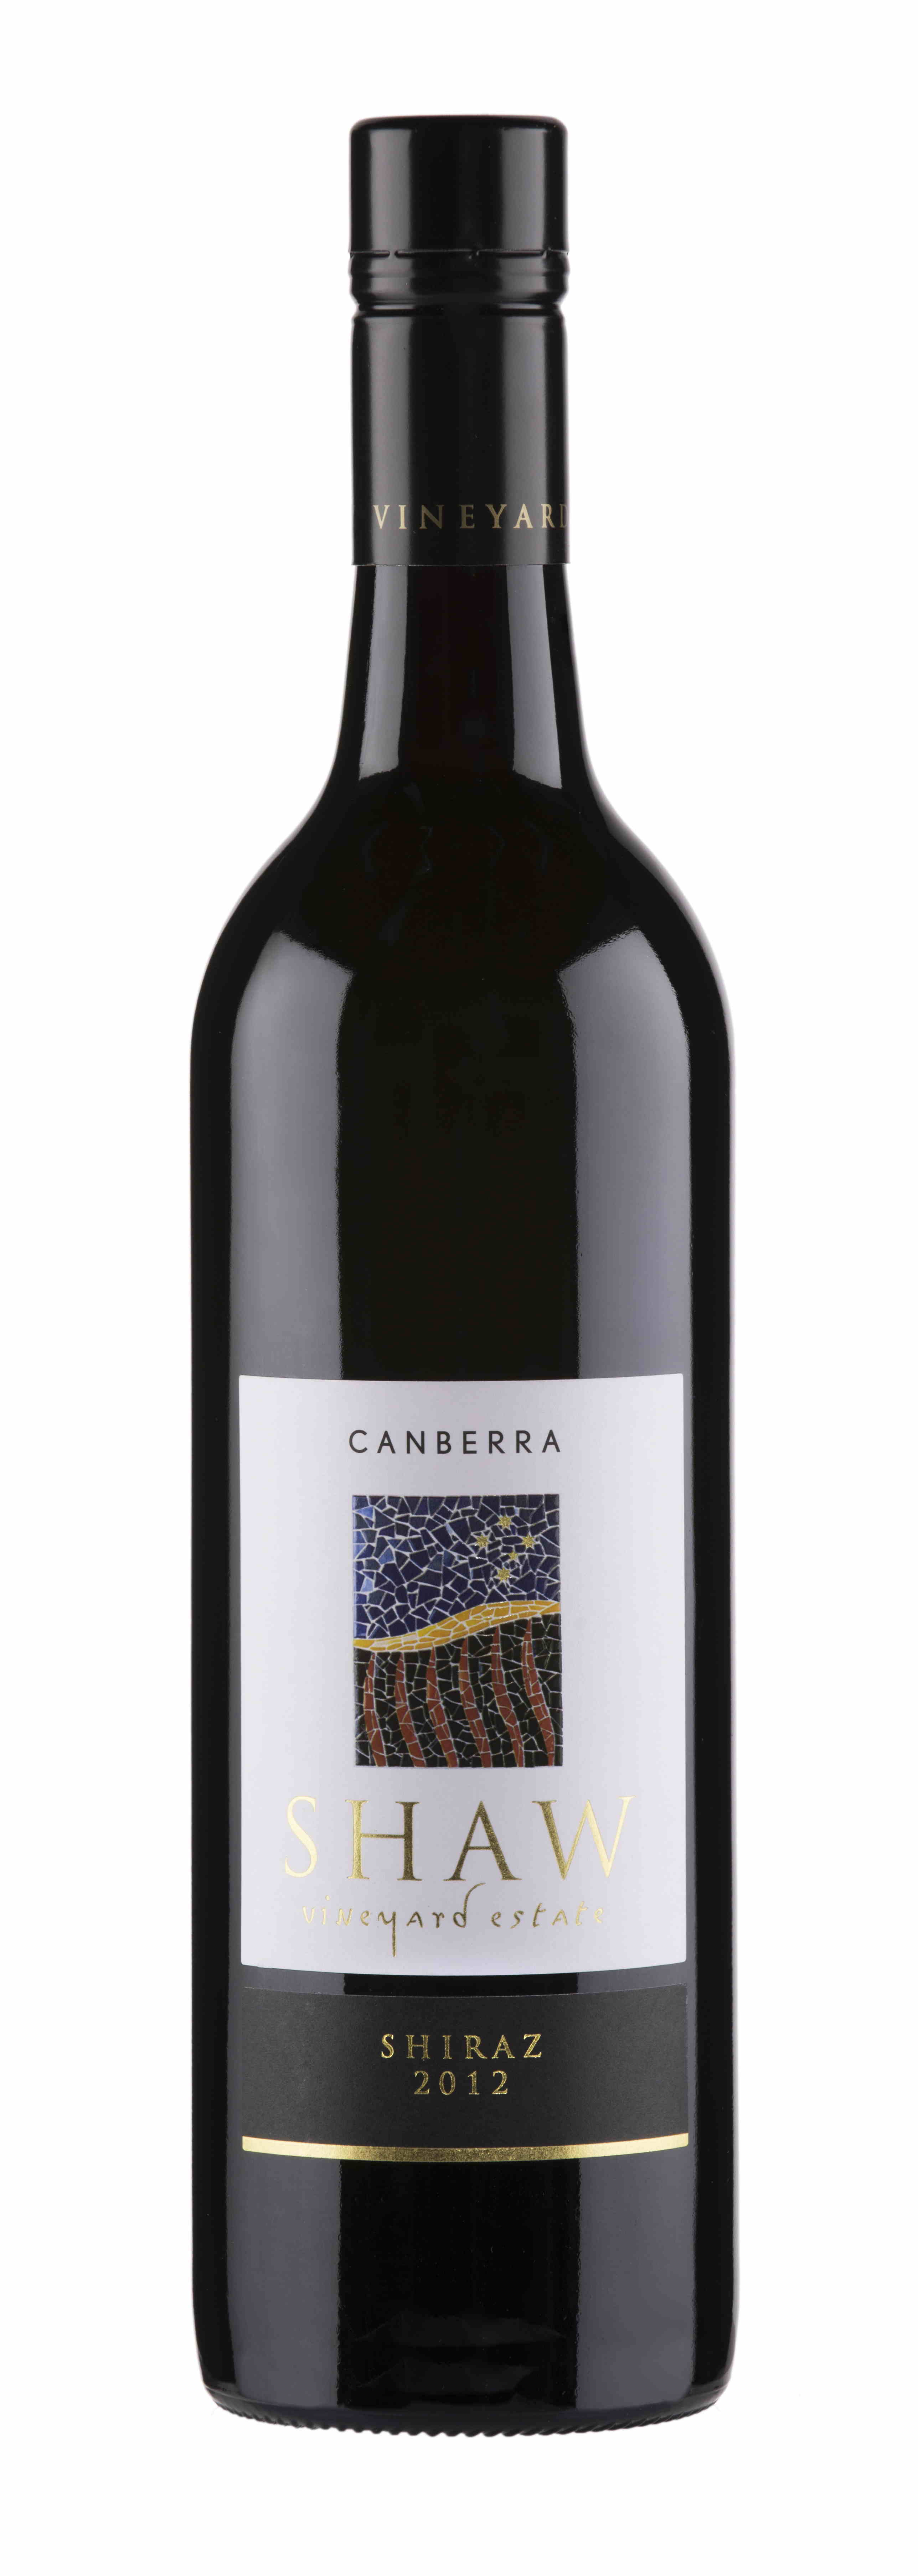 A Capital Shiraz from Canberra